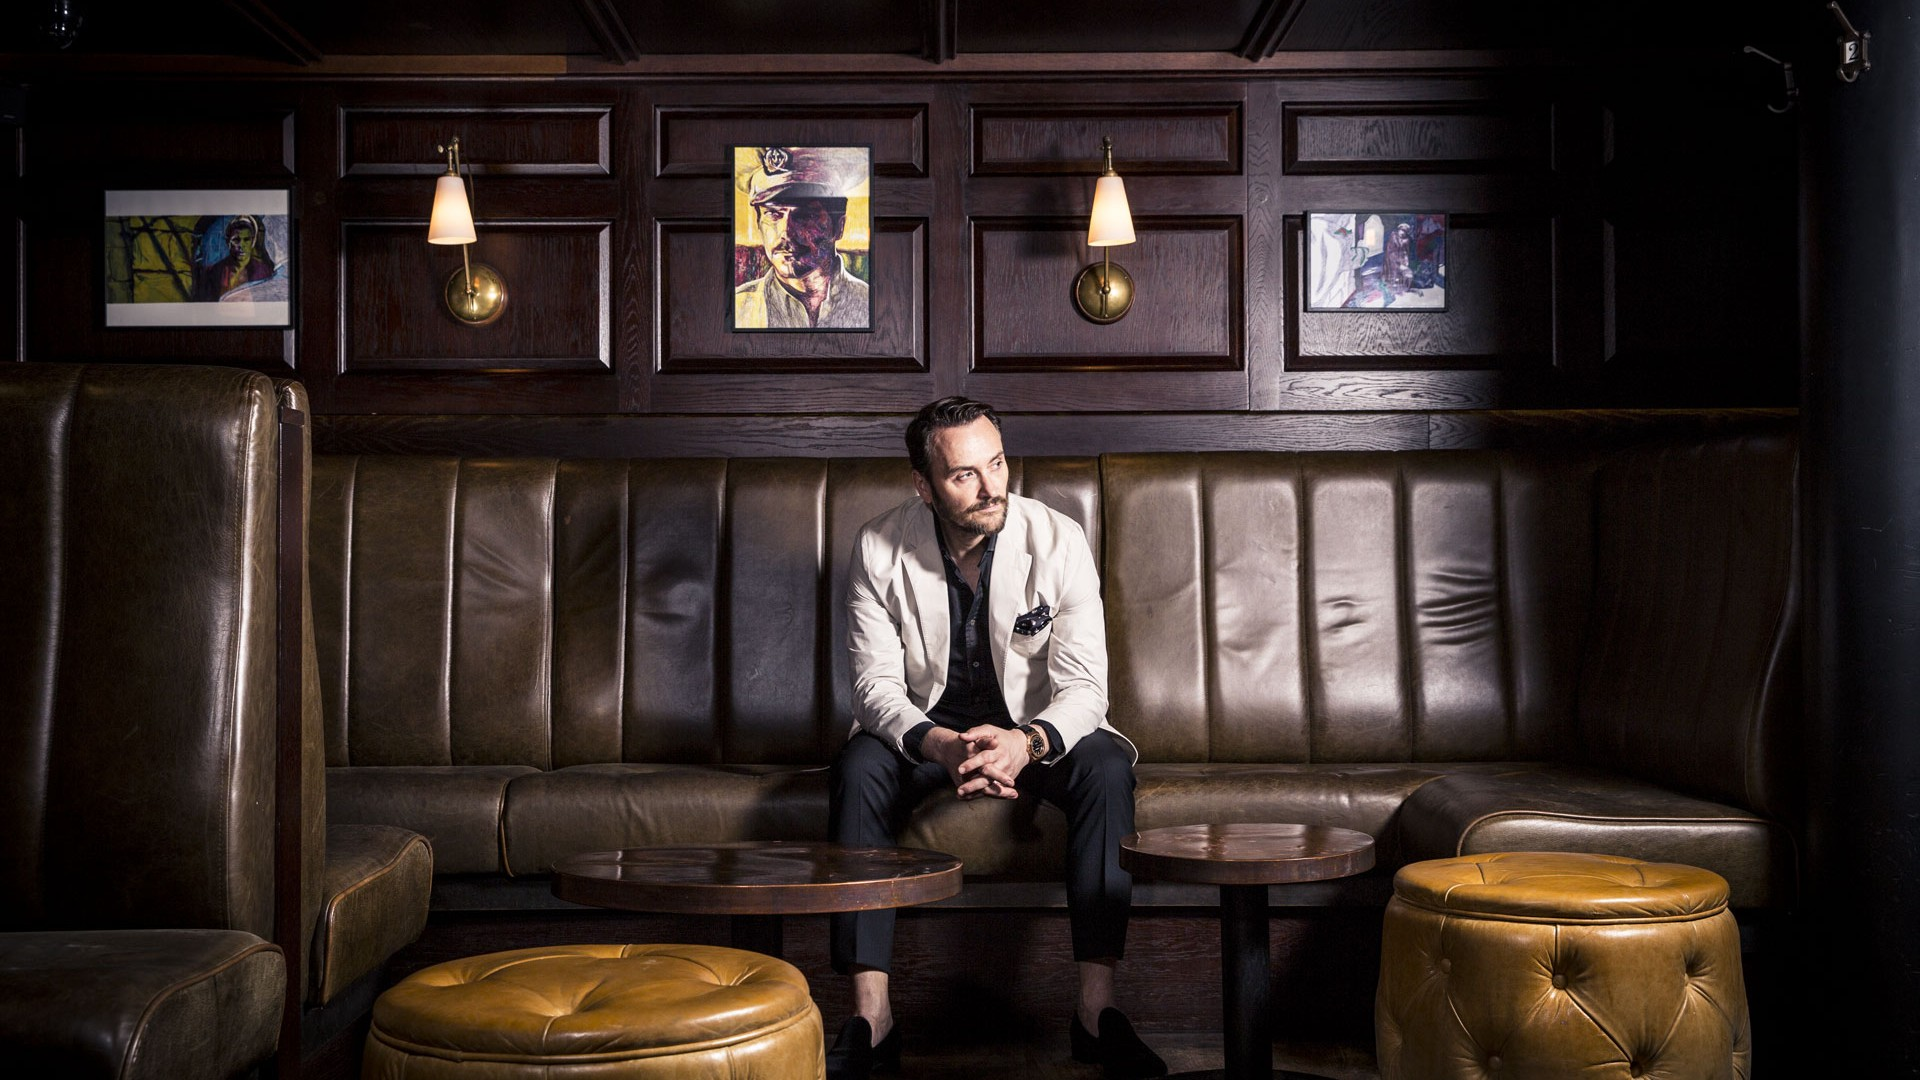 Jason Atherton chef and restauranteur in The Blind Pig bar